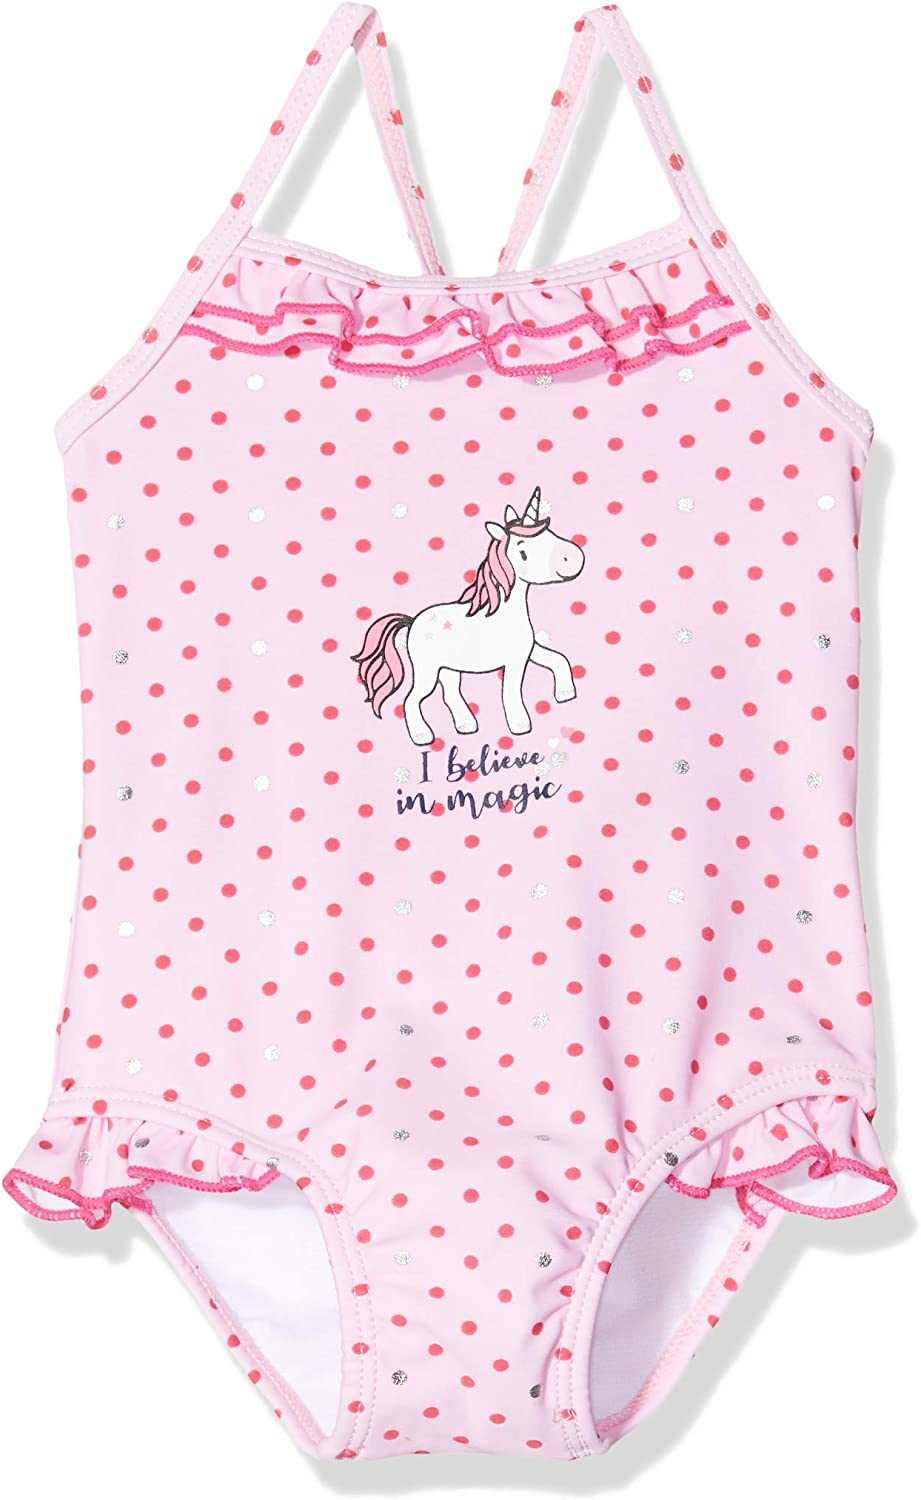 SALT AND PEPPER Baby/_Girls 03231210 One Piece Swimsuit Pink 12-18 Months Soft Pink 824